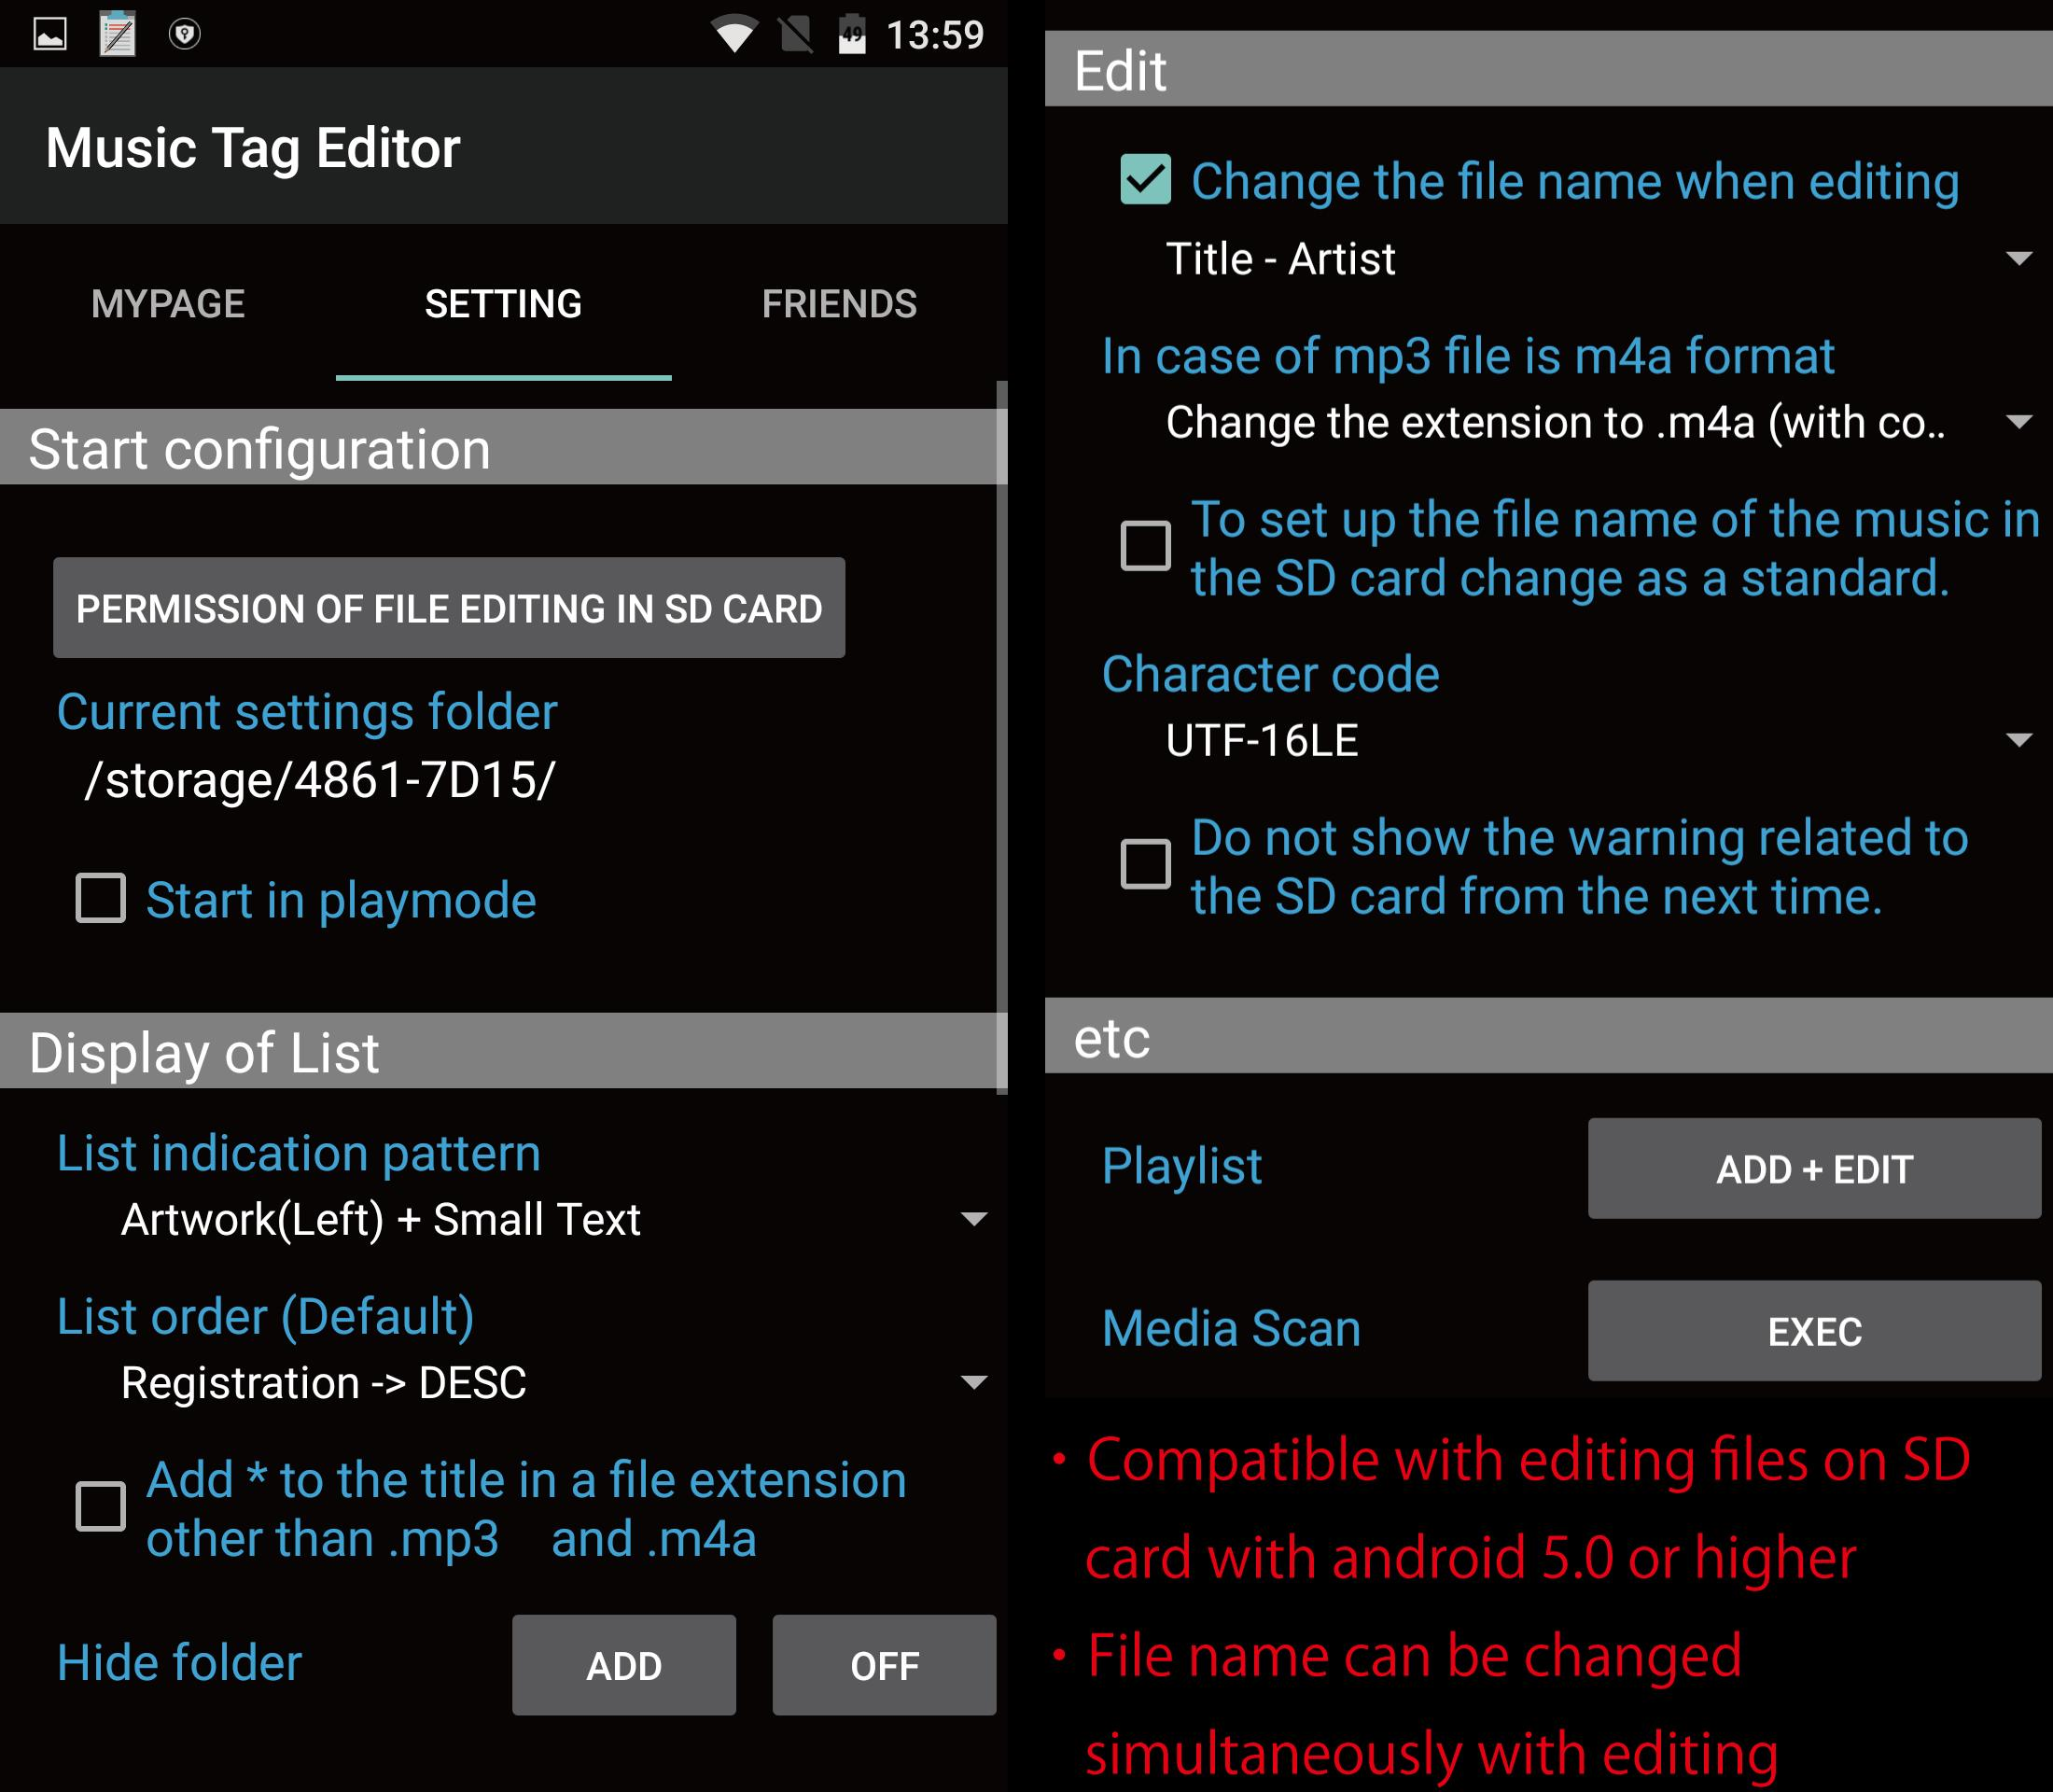 TK Music Tag Editor for Android - APK Download